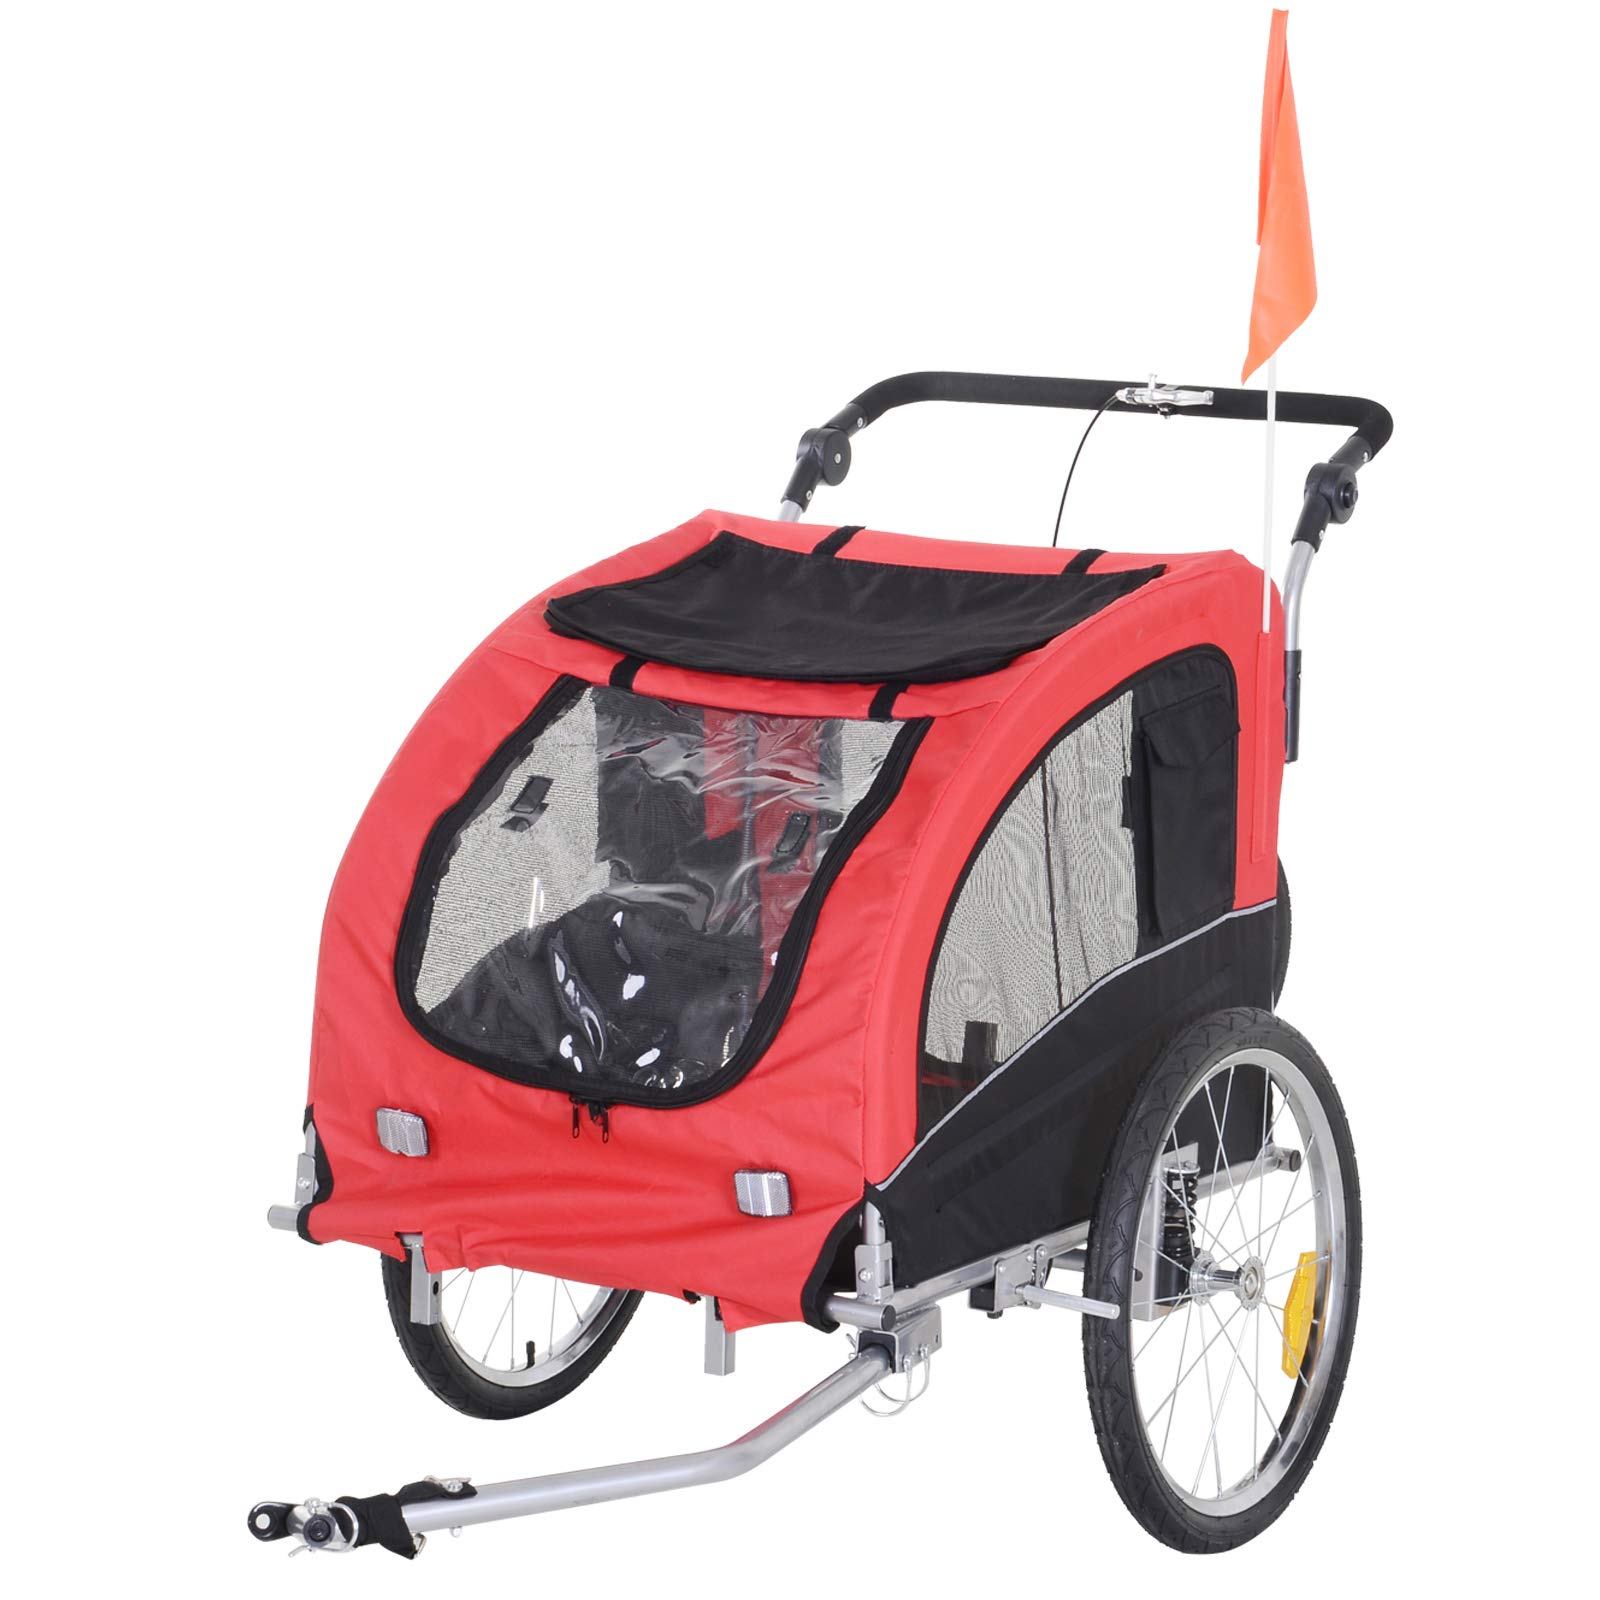 Aosom Elite II Pet Dog Bike Bicycle Trailer Stroller Jogger with Suspension by Aosom